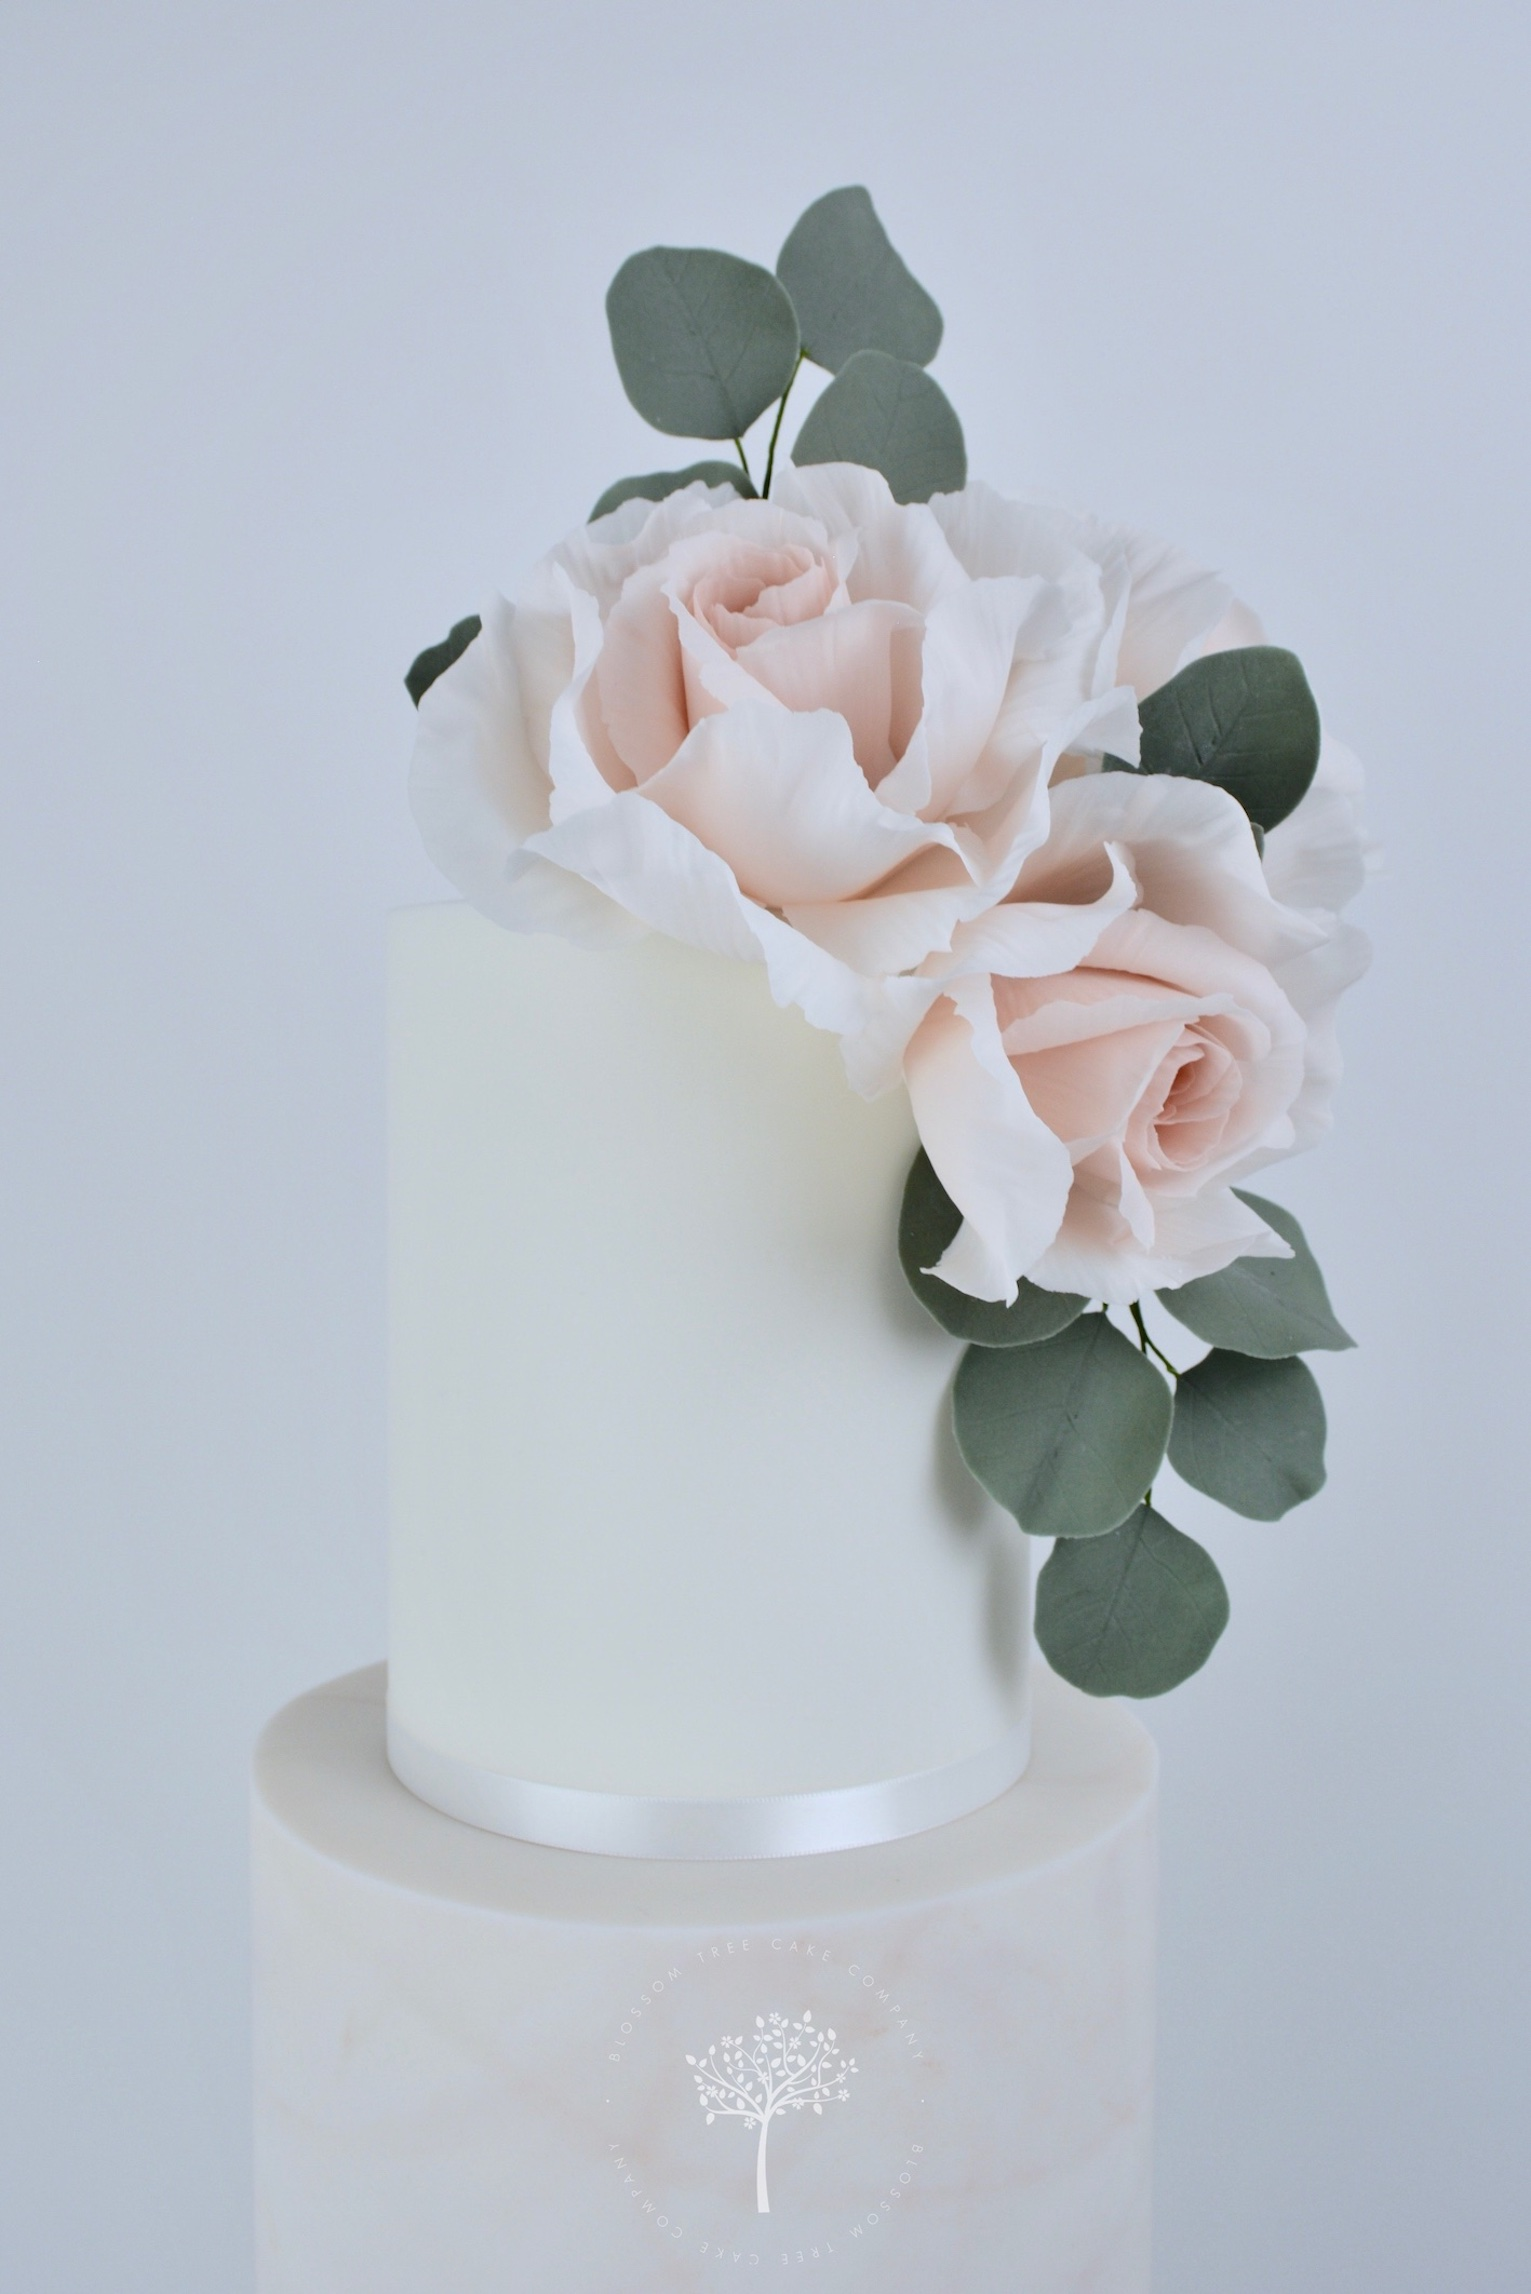 Dusky Pink Marble with Roses wedding cake by Blossom Tree Cake Company Harrogate North Yorkshire - top sugar roses.jpg